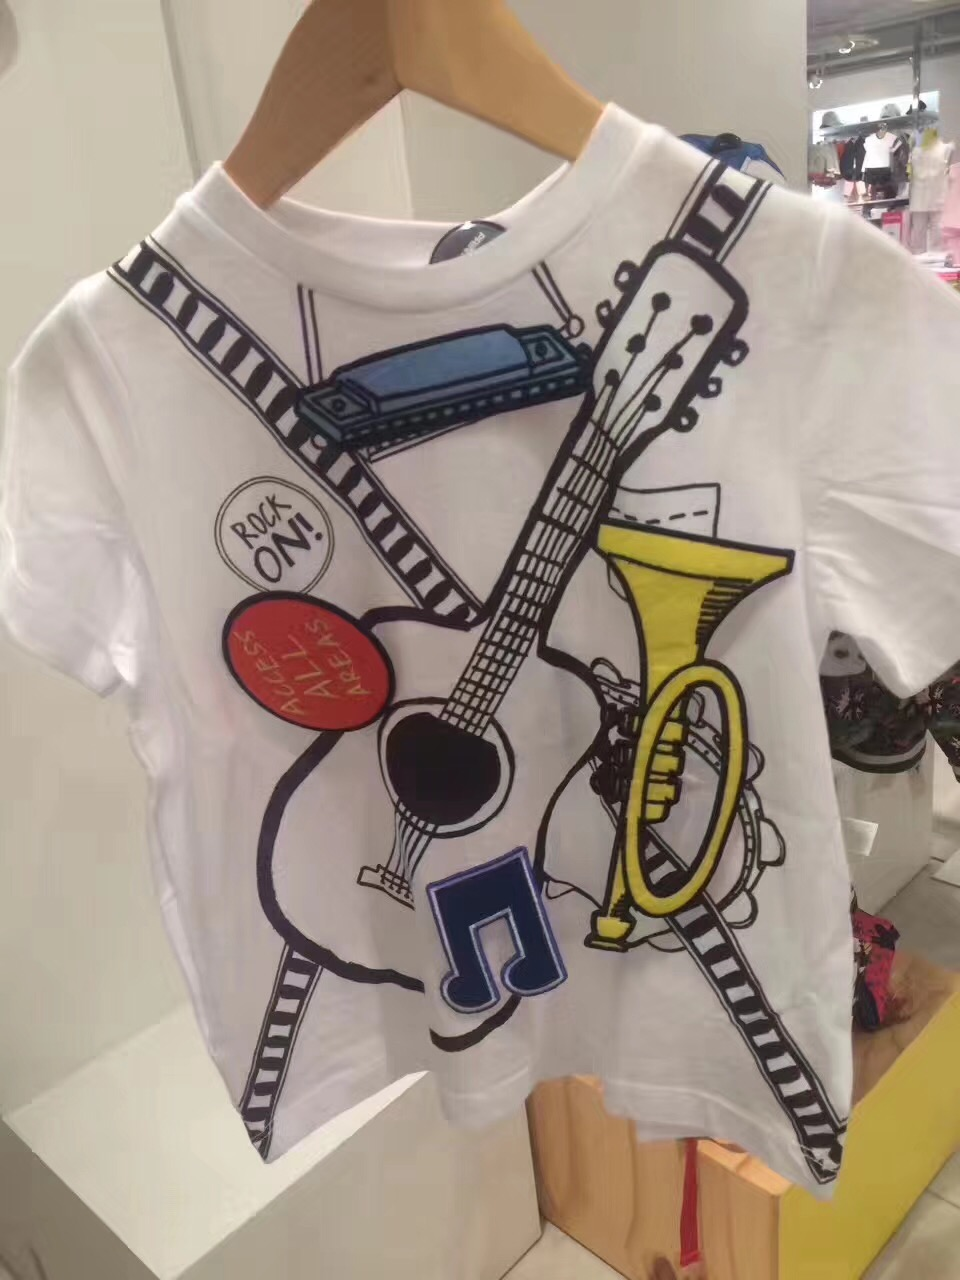 In Stock Kids Clothes Summer Fashion Tops Girls Boys Cotton T-short Interesting Music Note Guitar Graffiti Tees